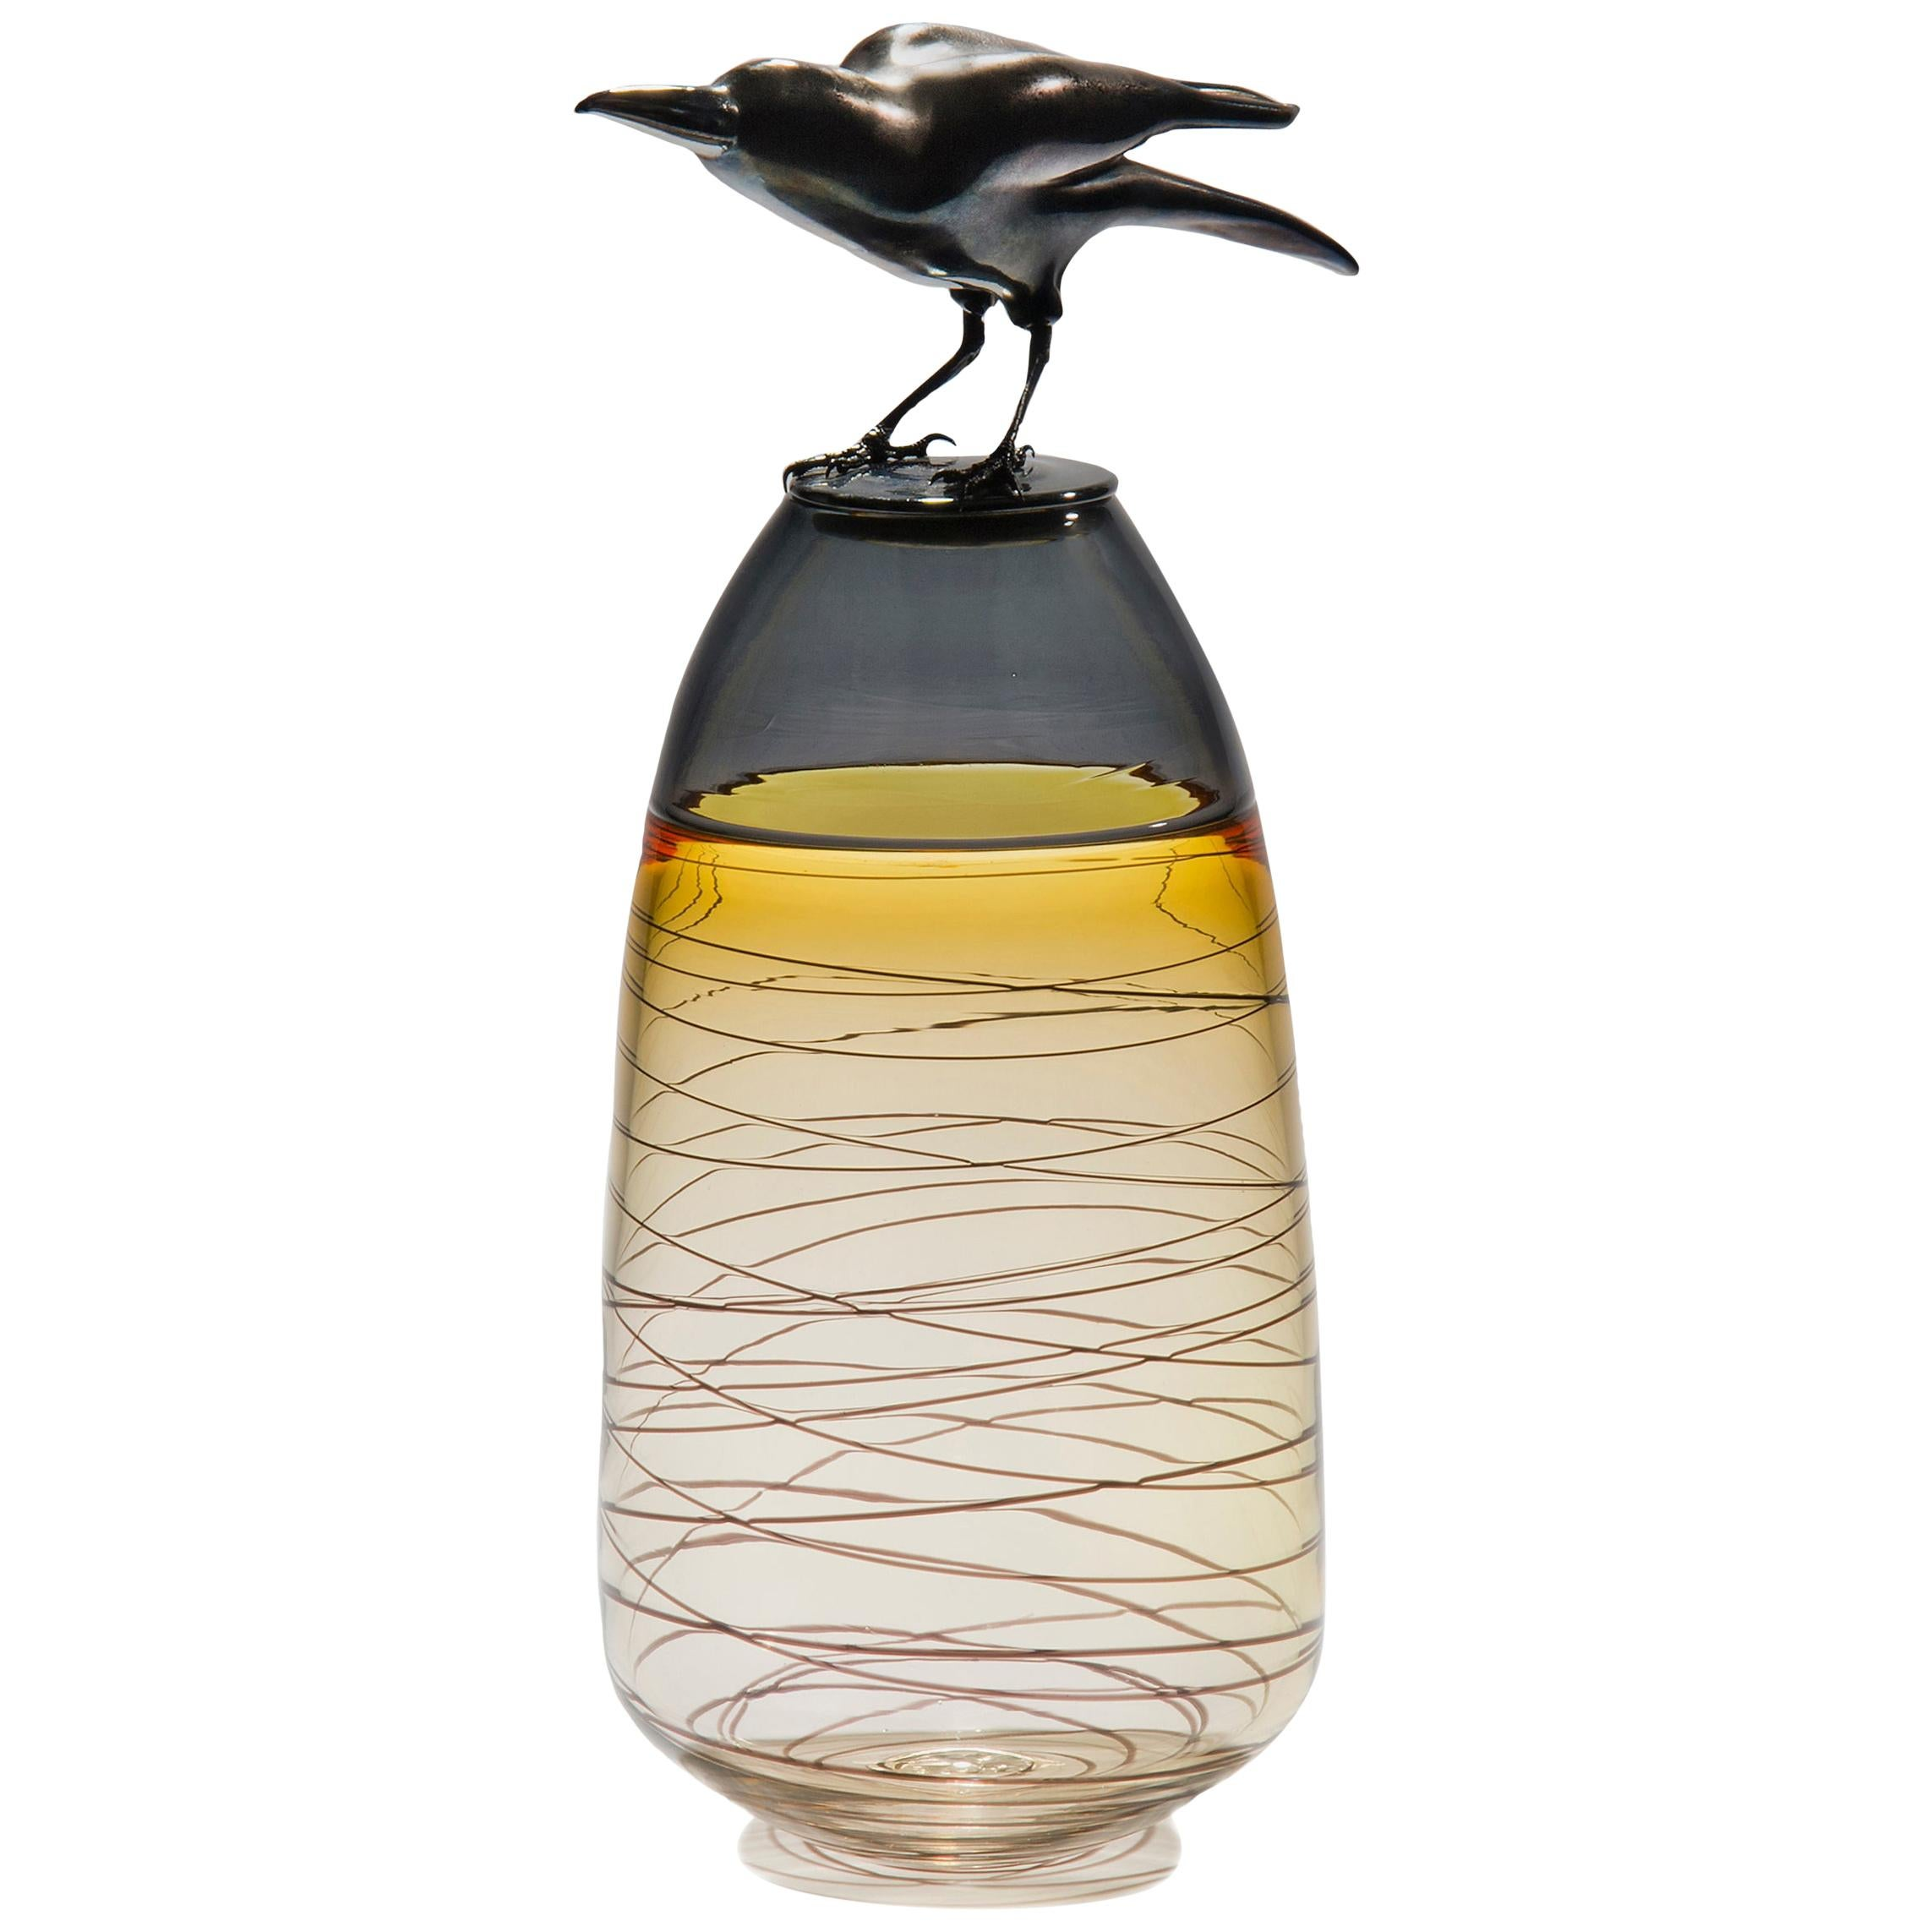 Take off, a Unique Glass Sculptural Vase with Black Crow by Julie Johnson